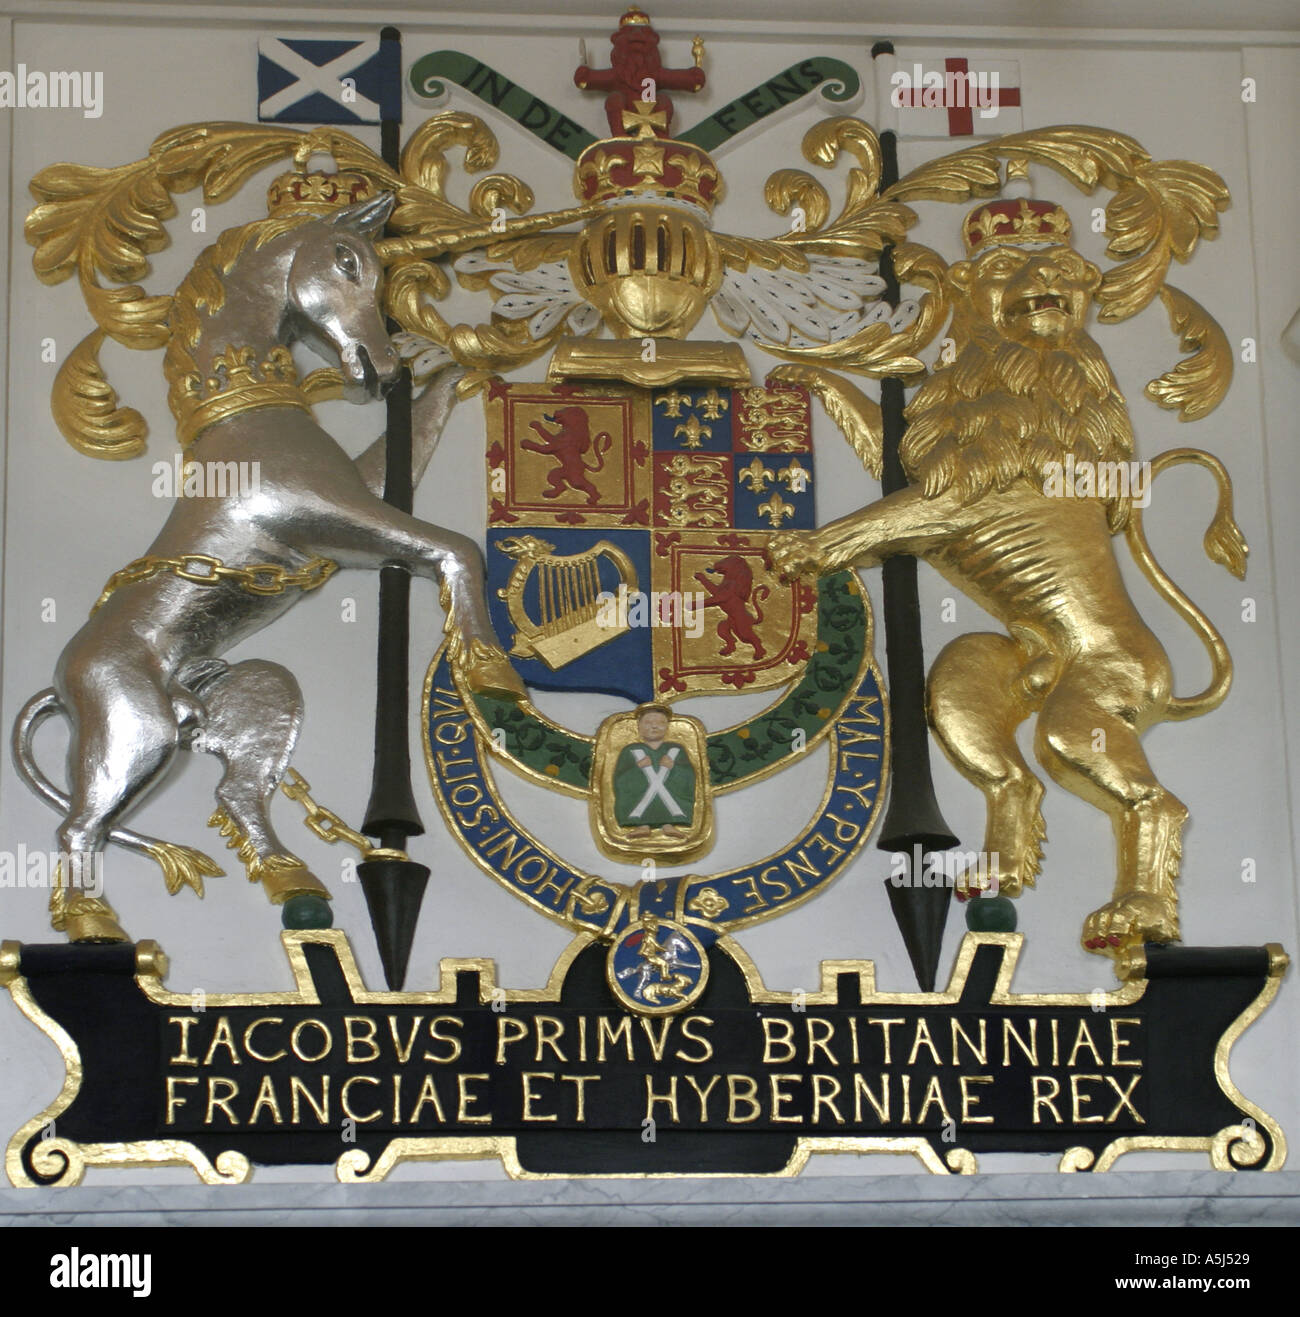 Scotland King James I Of England Coat Of Arms Stock Photo